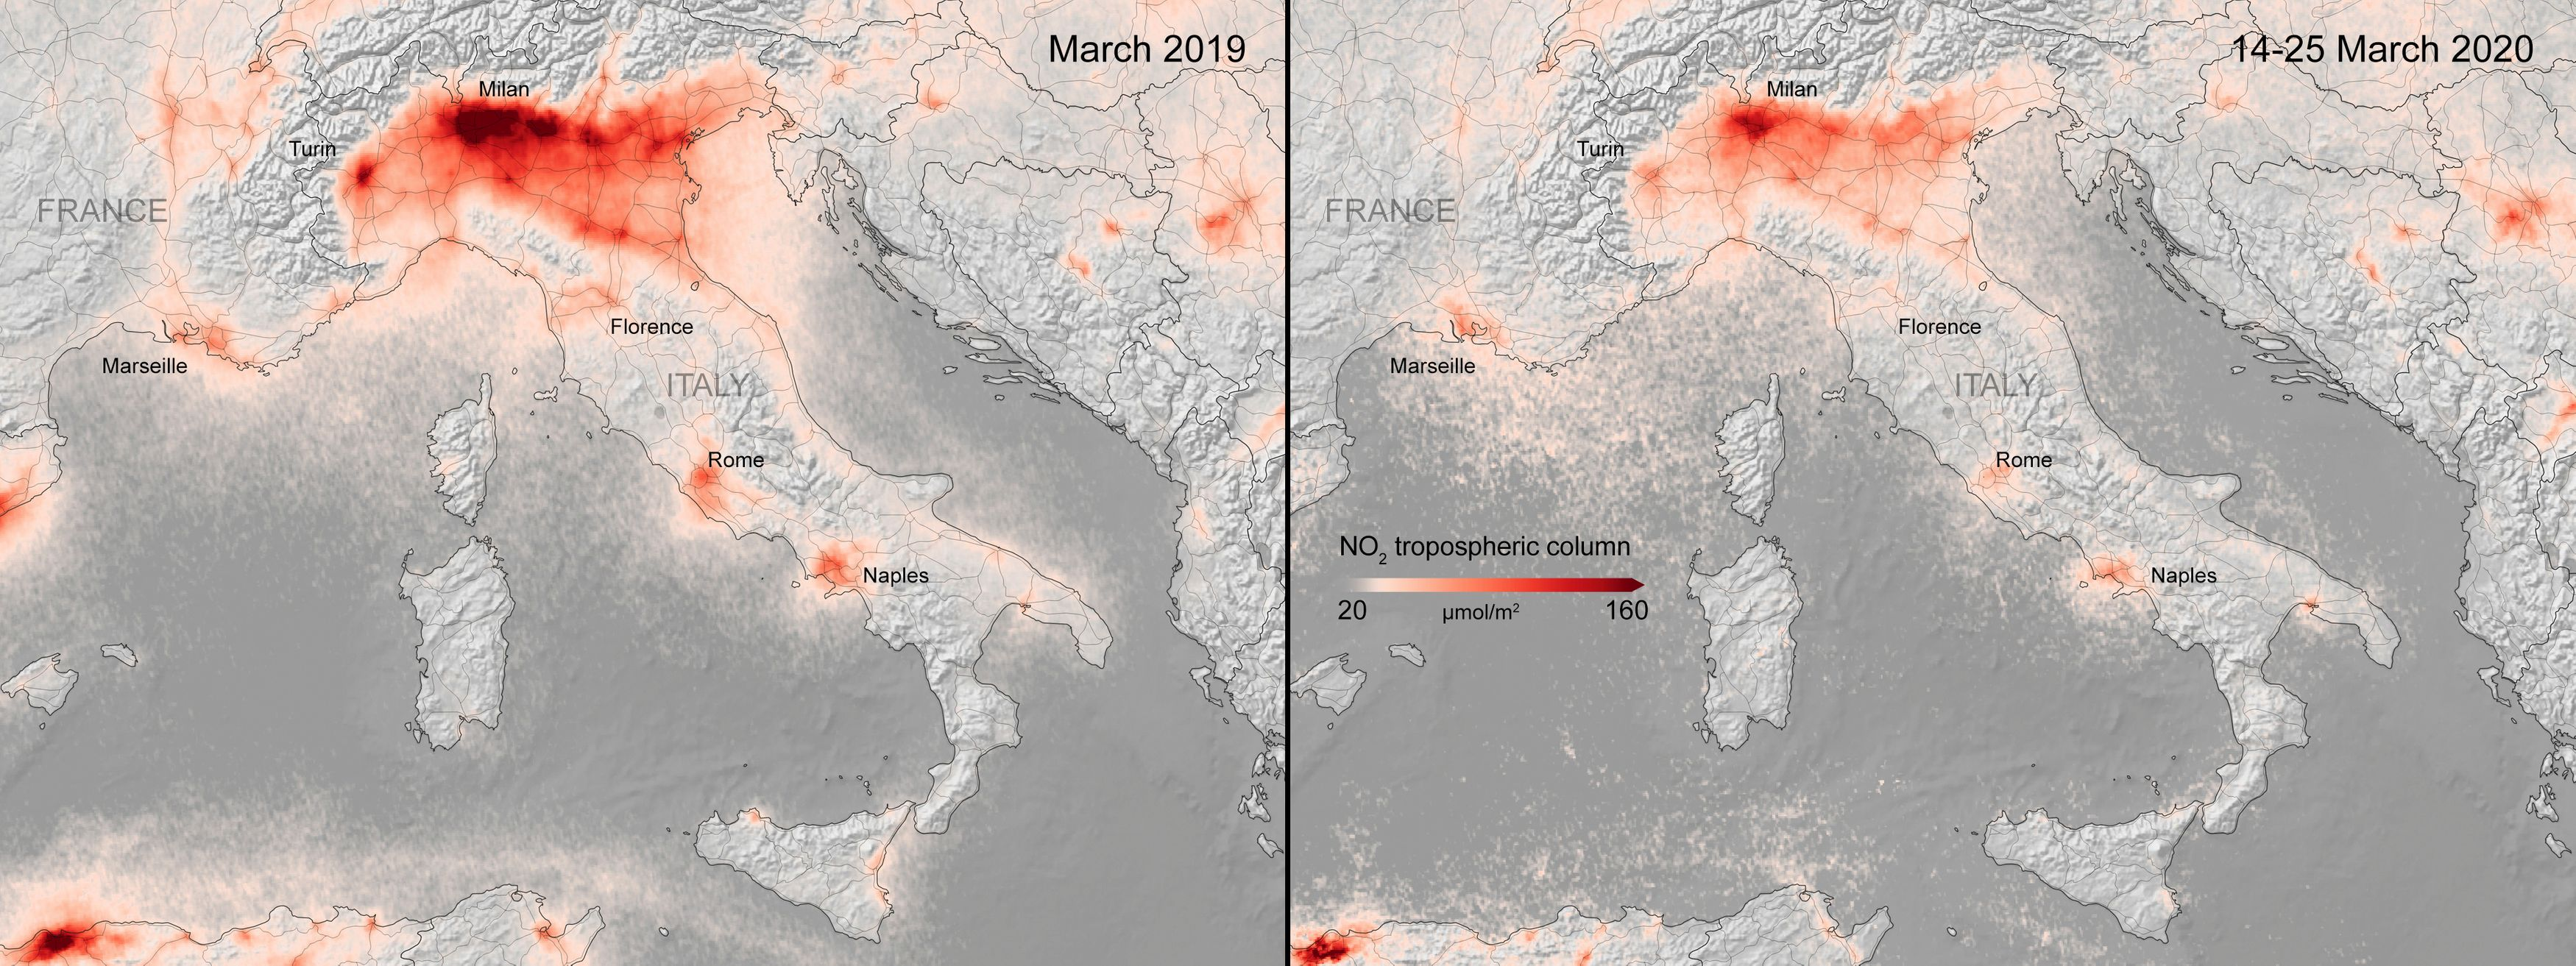 A combination image from the ESA shows the average nitrogen dioxide concentrations from air pollution across Italy